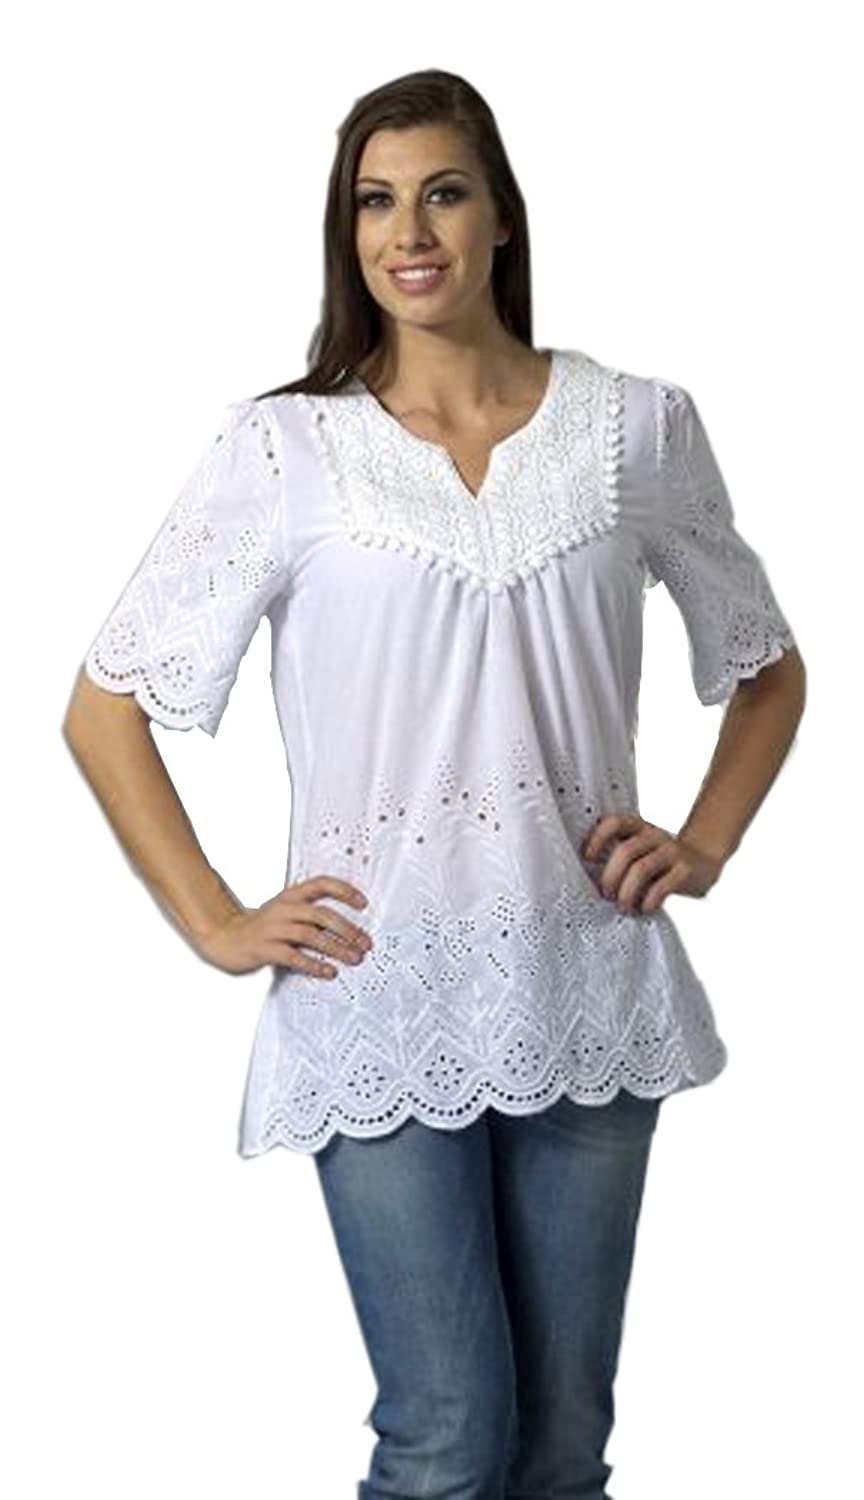 Bacci Clothing - Nelly, Peasant Blouse, Short Sleeve Button Front, Knitted Accents